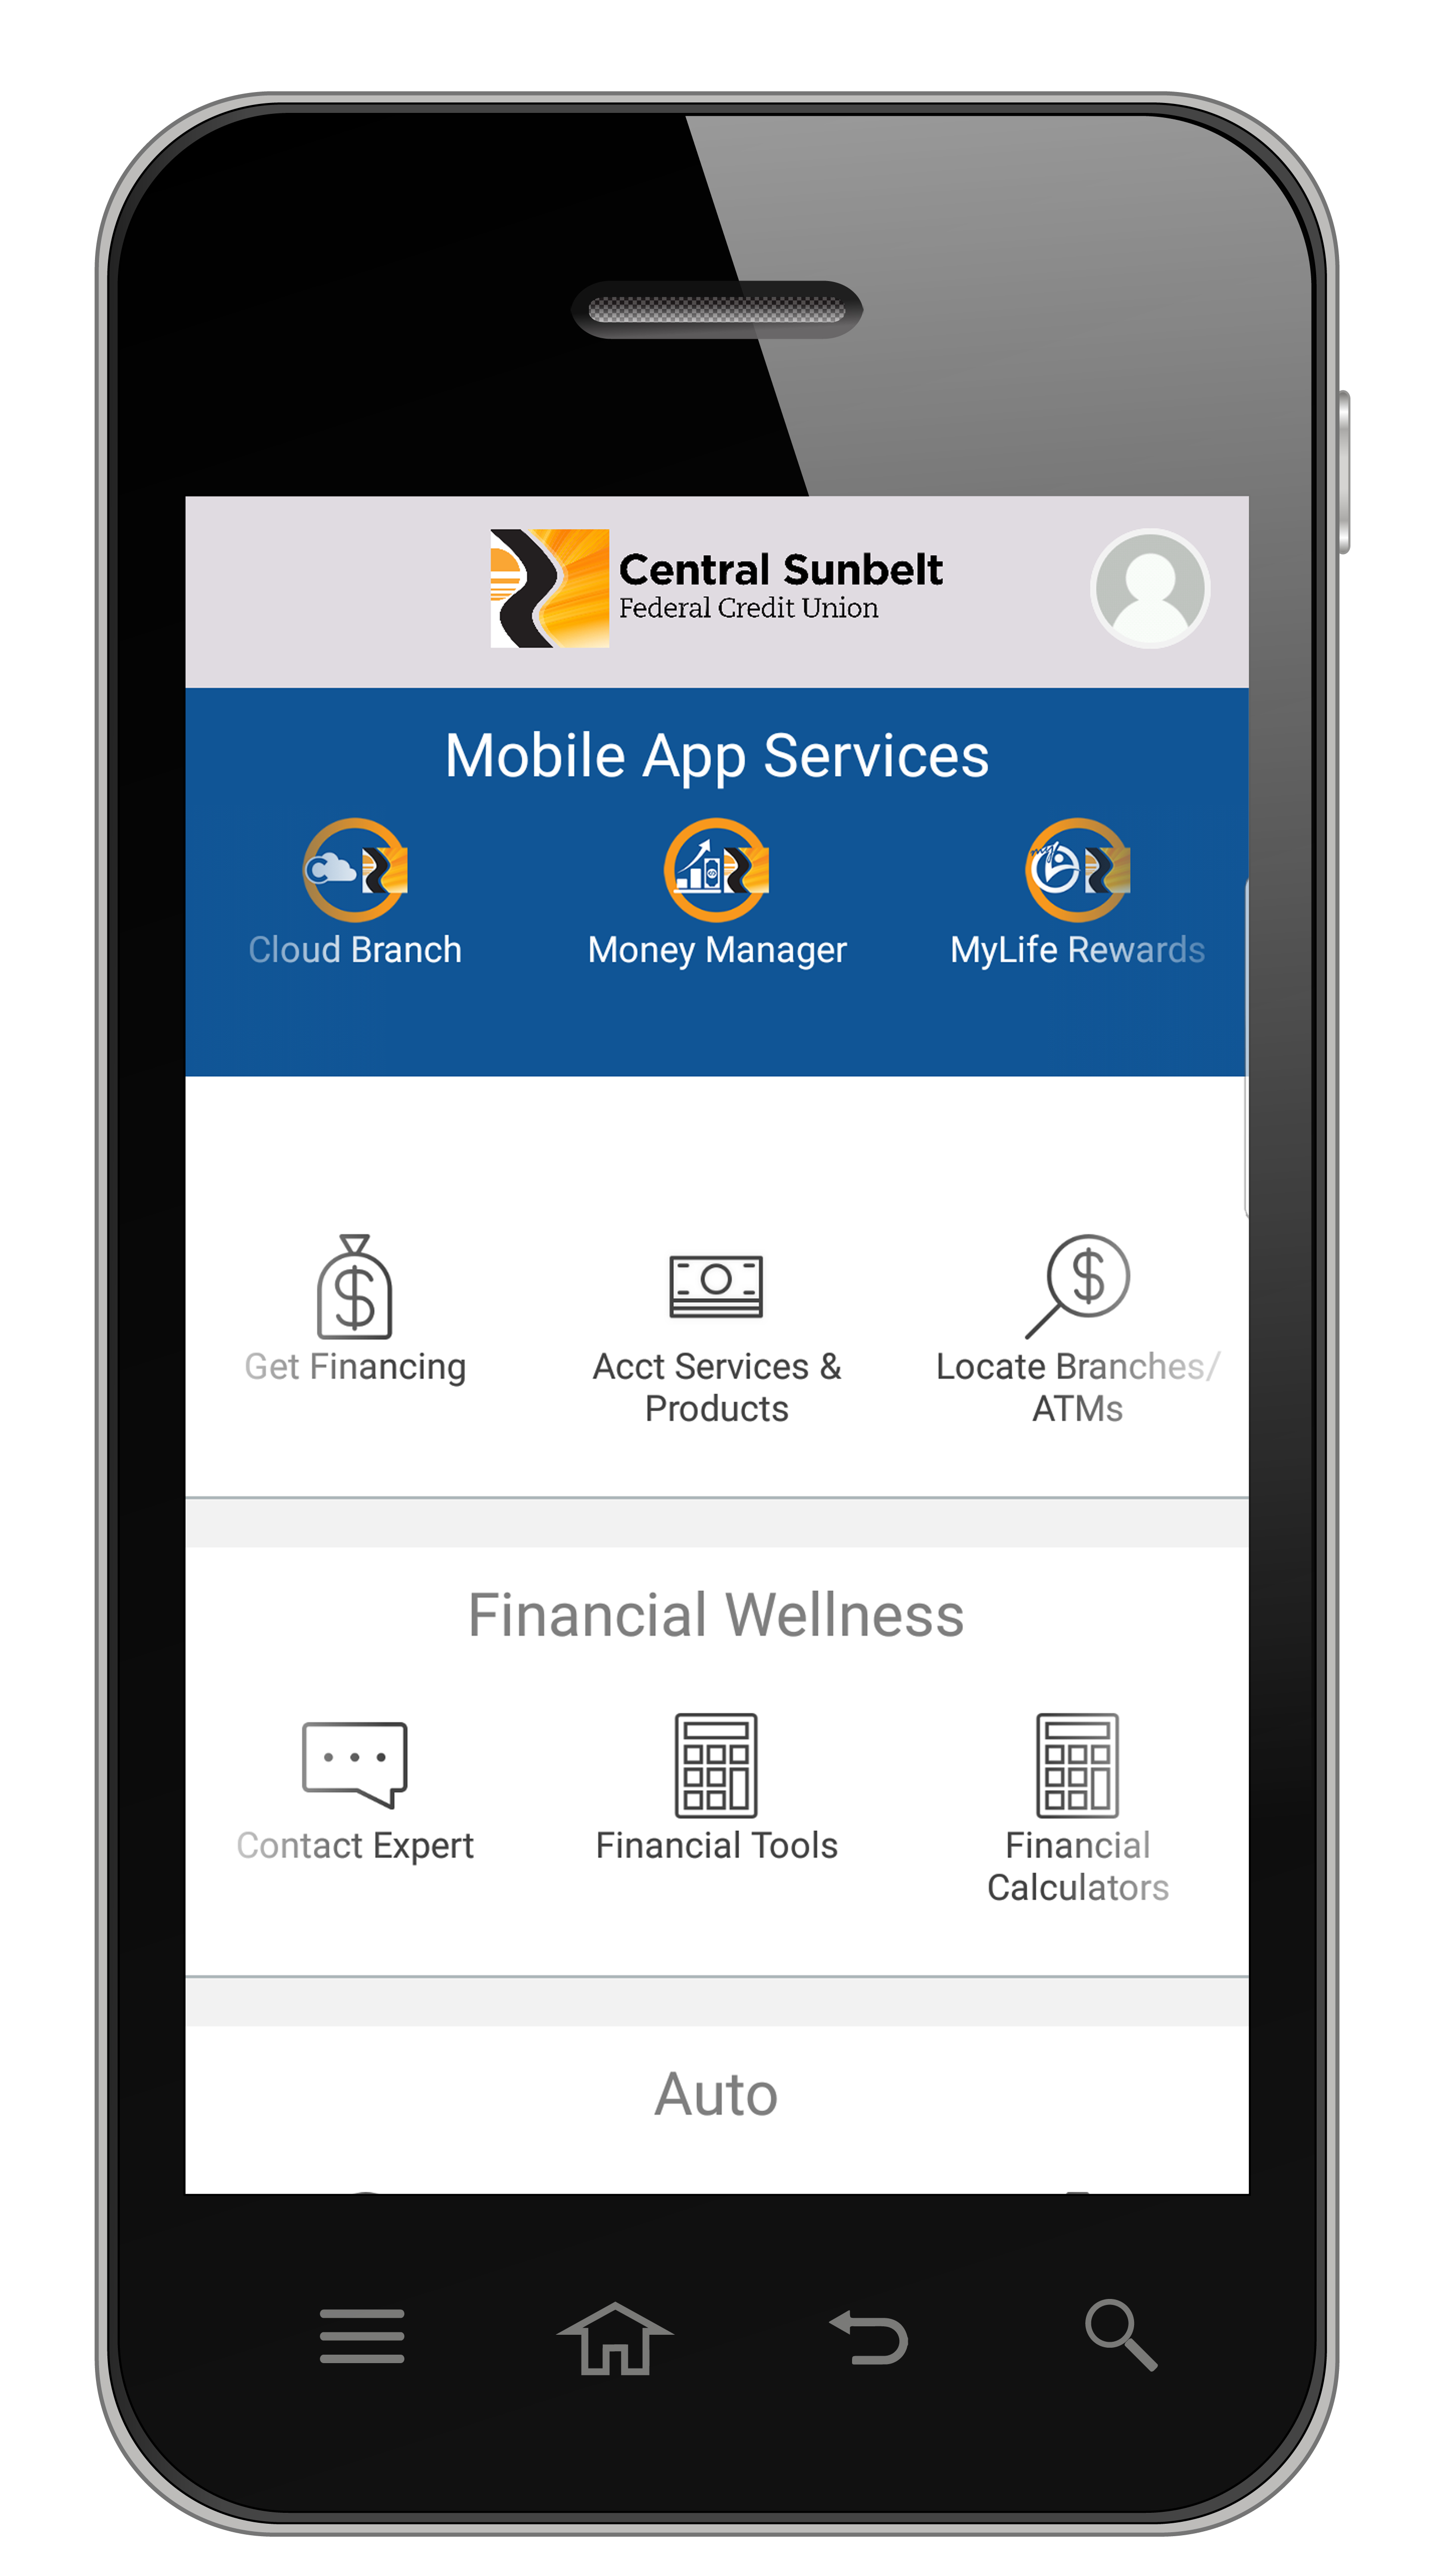 Unlock the ultimate banking app with Sunbelt Central